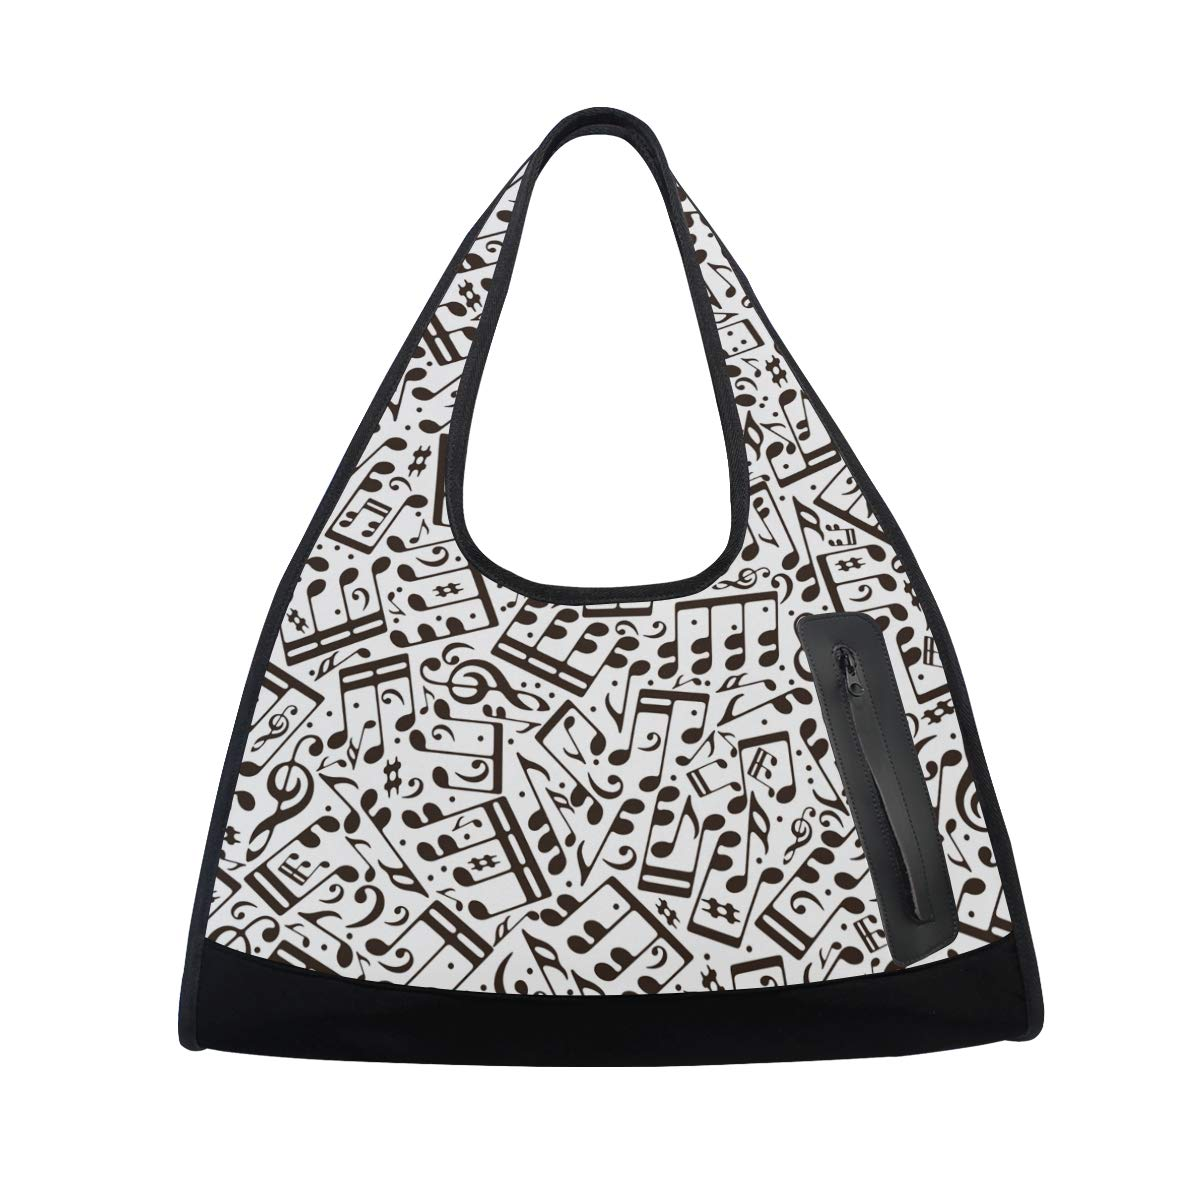 Gym Bag Sports Holdall Black And White Music Note Canvas Shoulder Bag Overnight Travel Bag for Men and Women